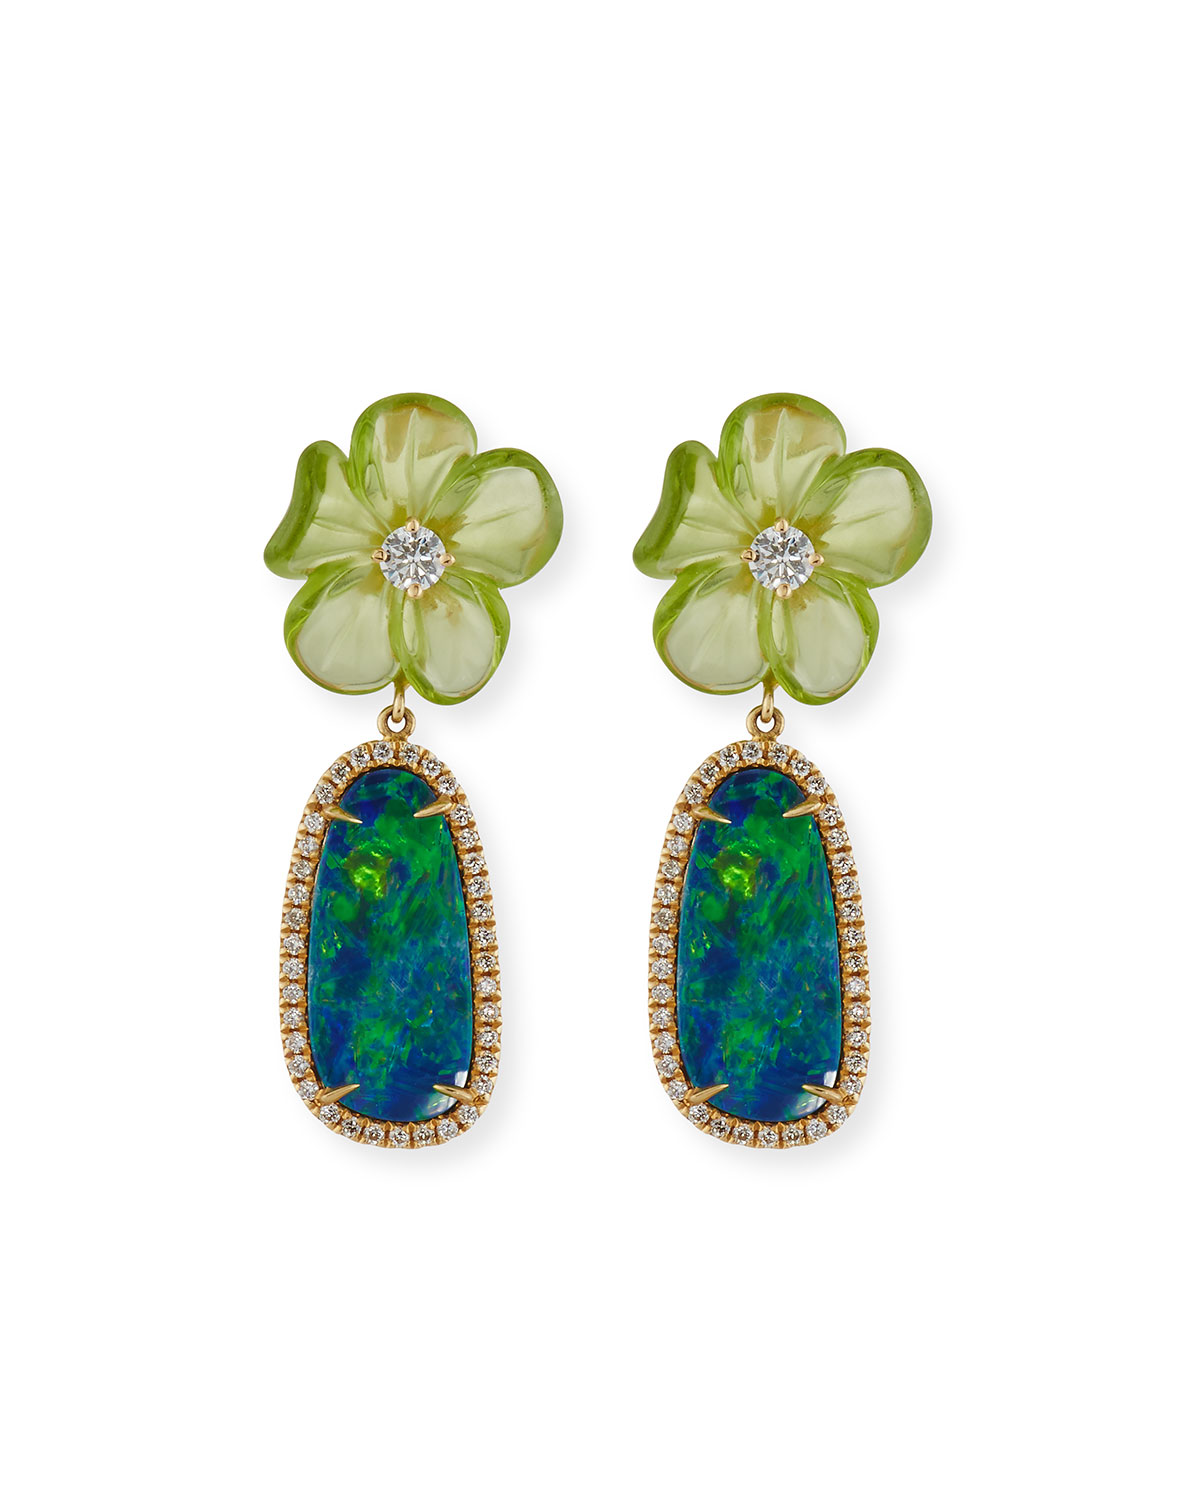 RINA LIMOR Floral Opal & Peridot Earrings With Diamonds